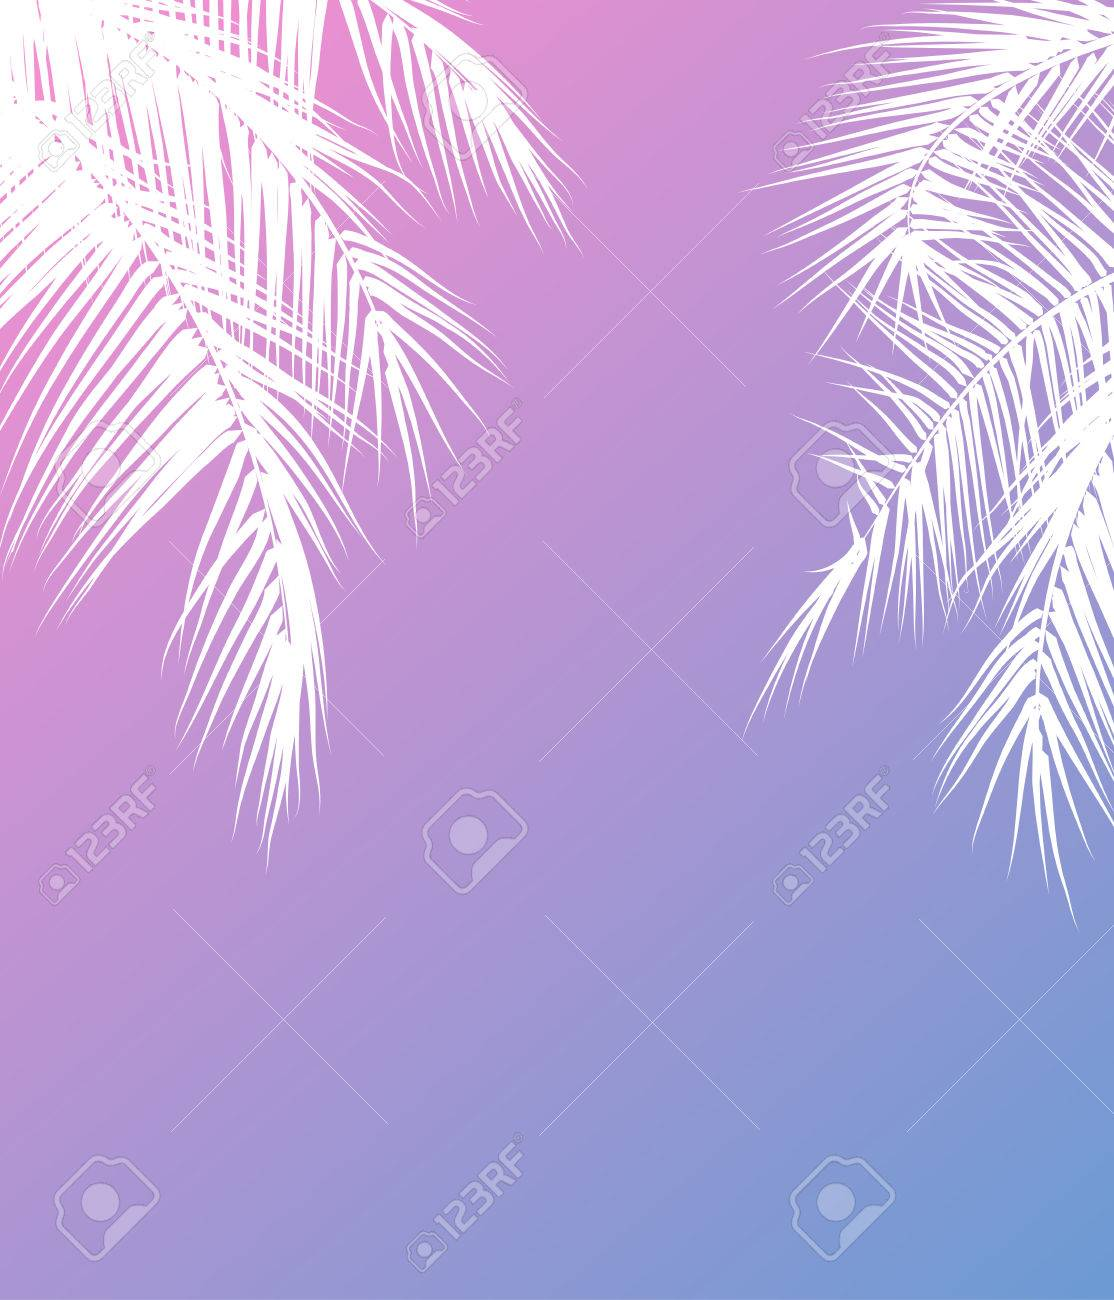 Summer Holidays Vector Illustration With Palm Trees Template